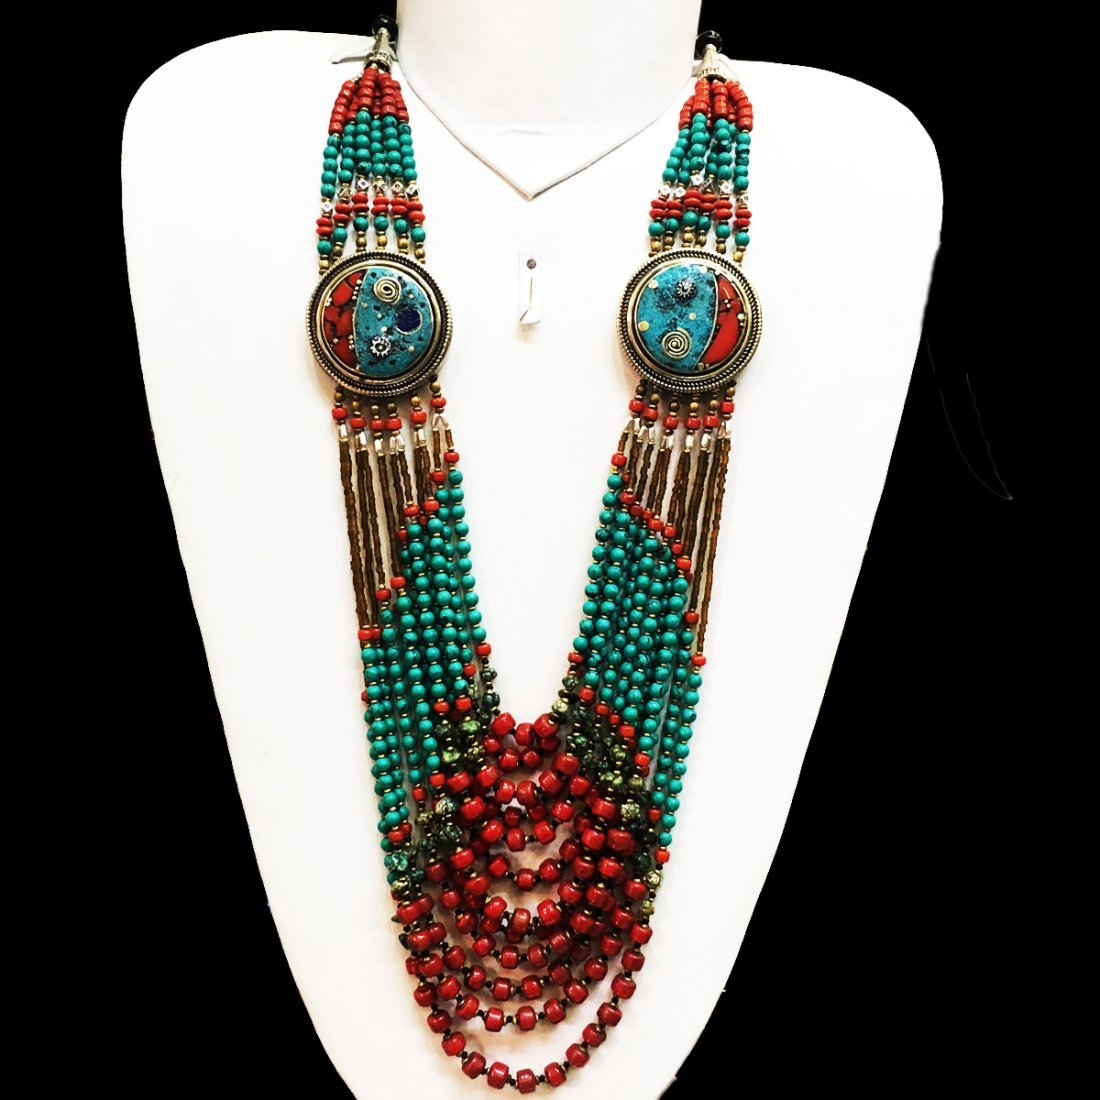 Vintage Genuine Turquoise & Coral Beads Necklace